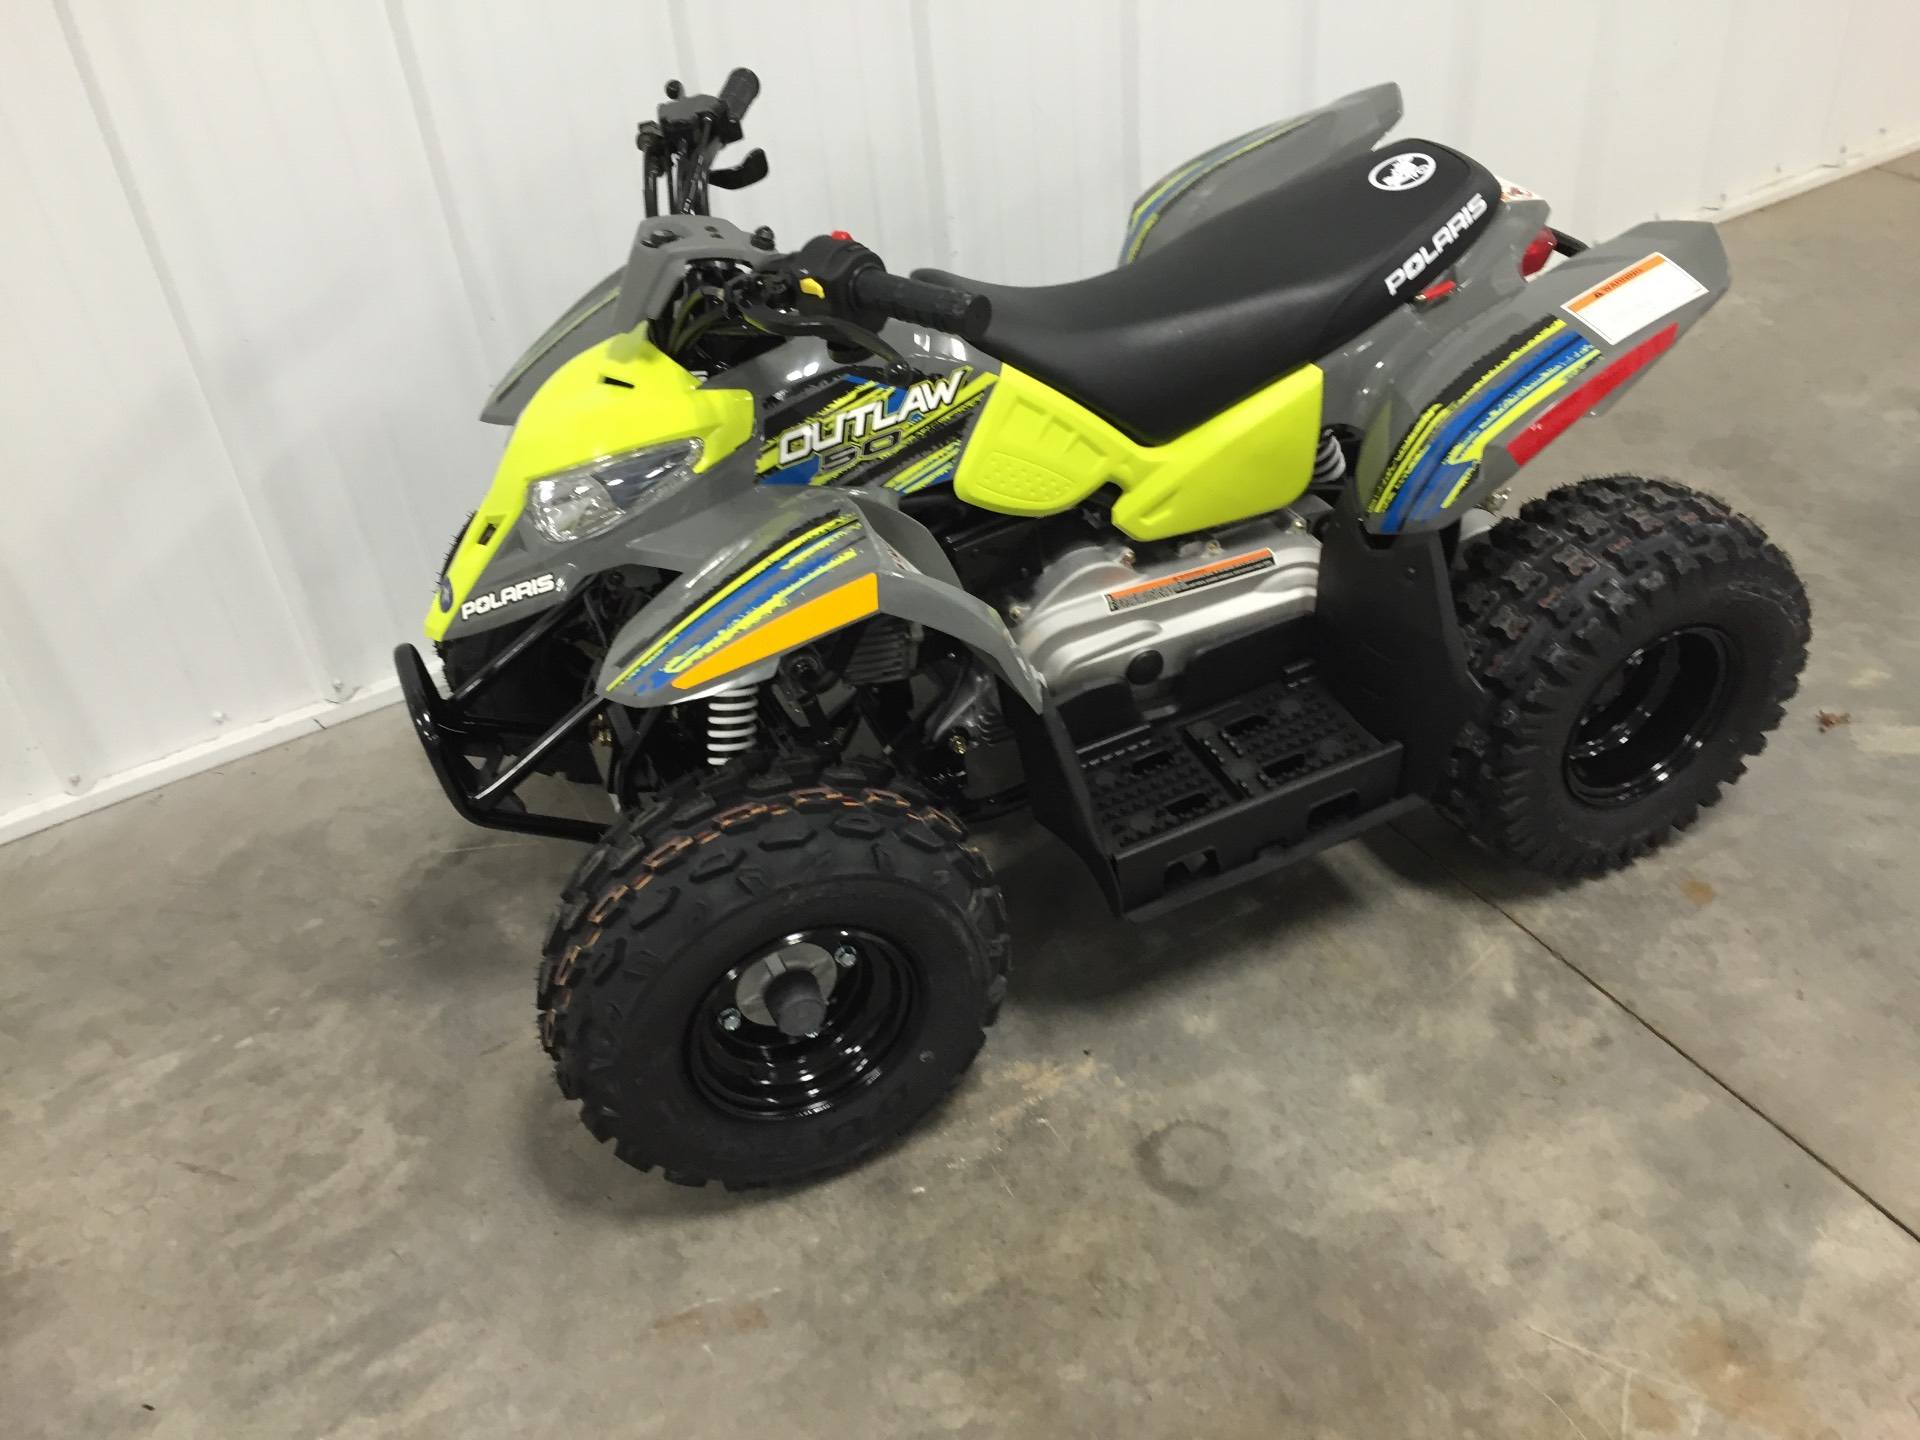 2019 Polaris Outlaw 50 in Altoona, Wisconsin - Photo 2